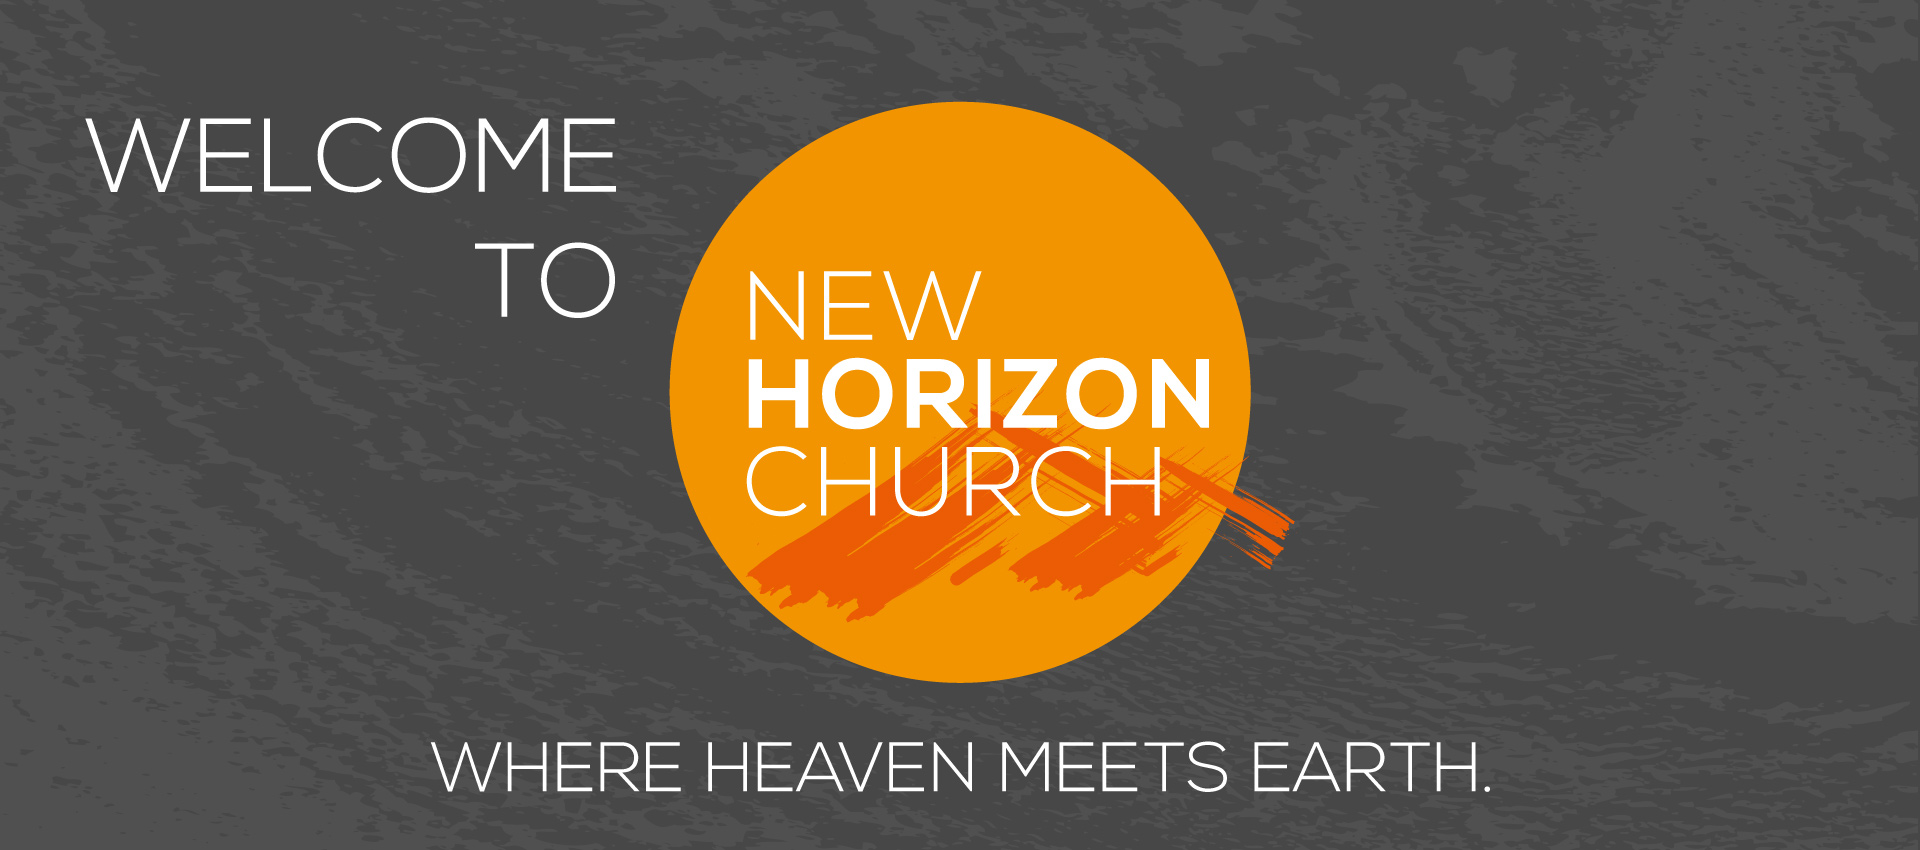 Welcome to New Horizon Church!